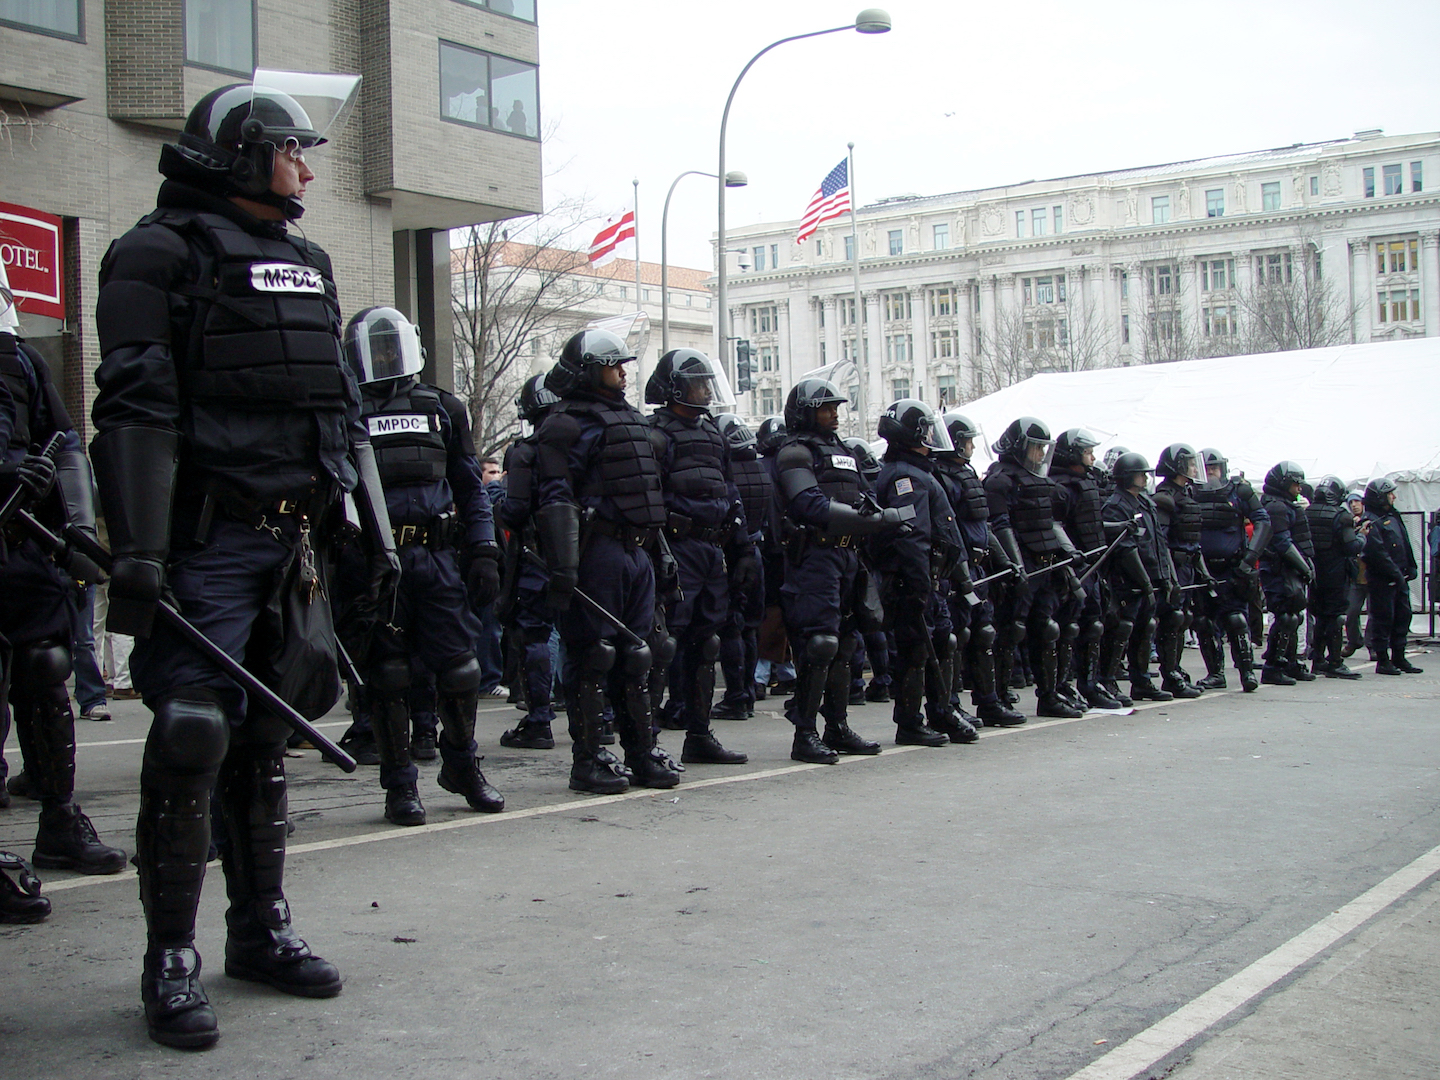 Image: American police state: No questions allowed